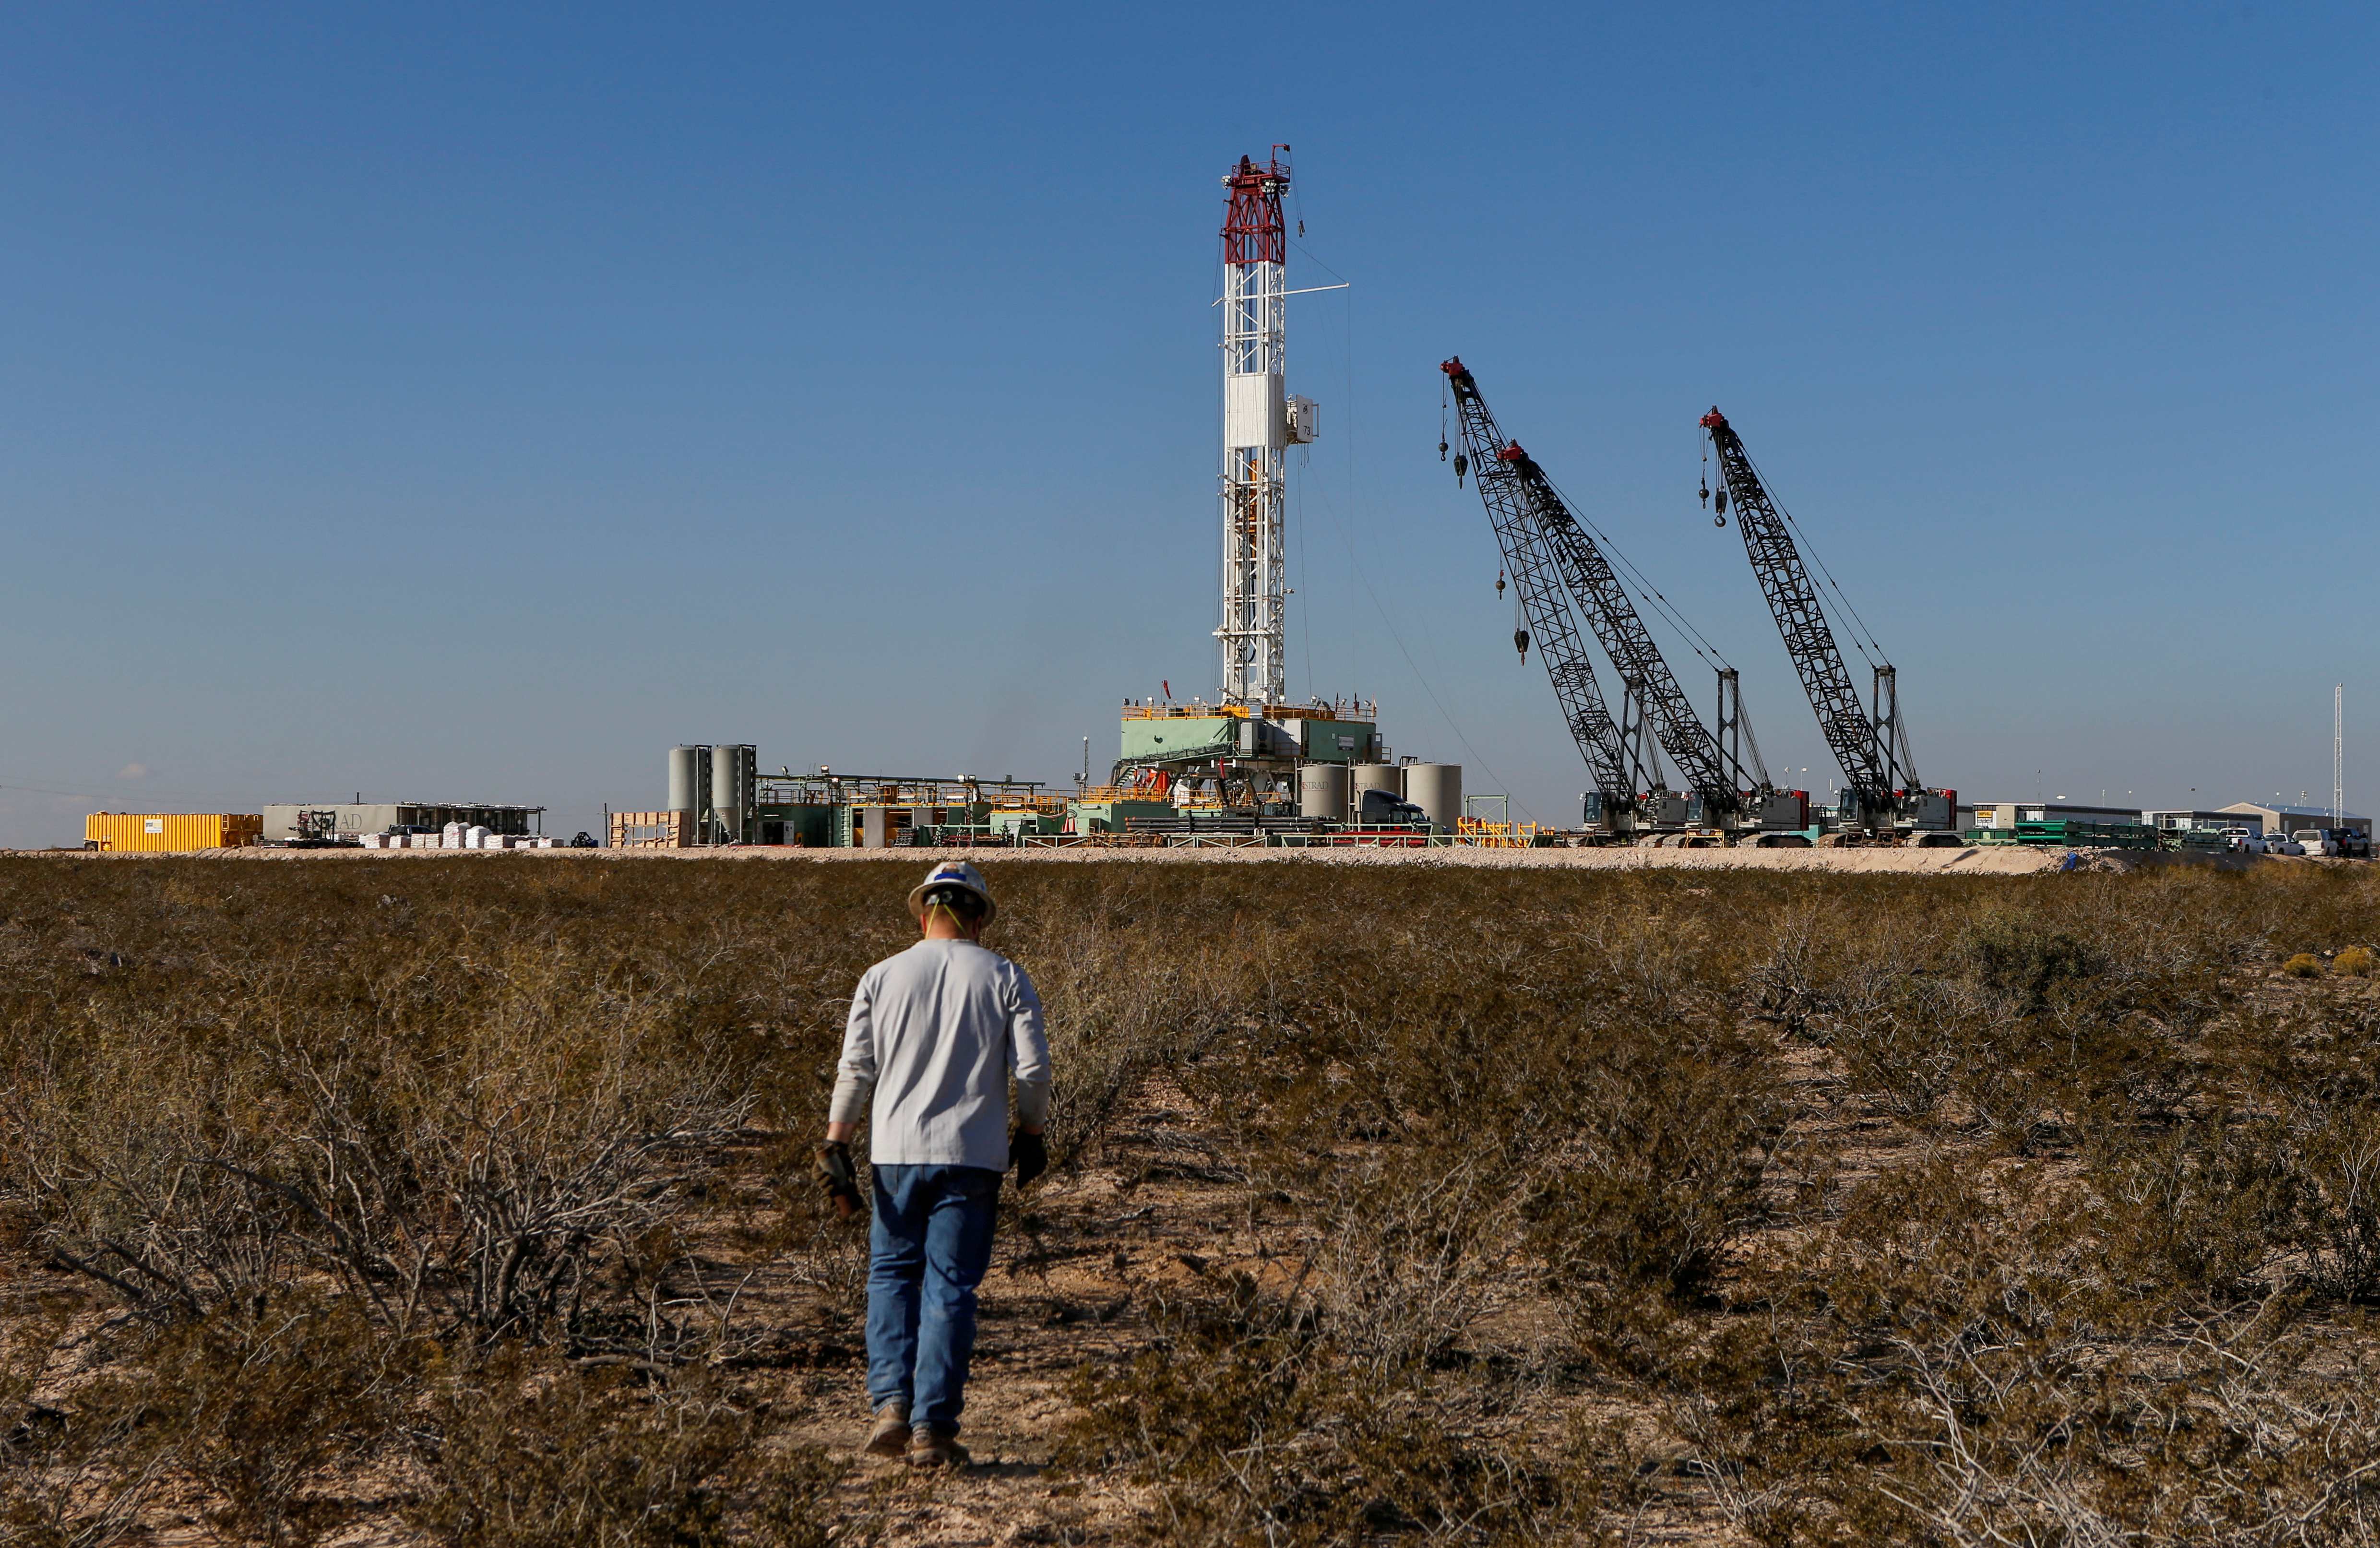 An oil worker walks toward a drill rig after placing ground monitoring equipment in the vicinity of the underground horizontal drill in Loving County, Texas, U.S., November 22, 2019. REUTERS/Angus Mordant/File Photo